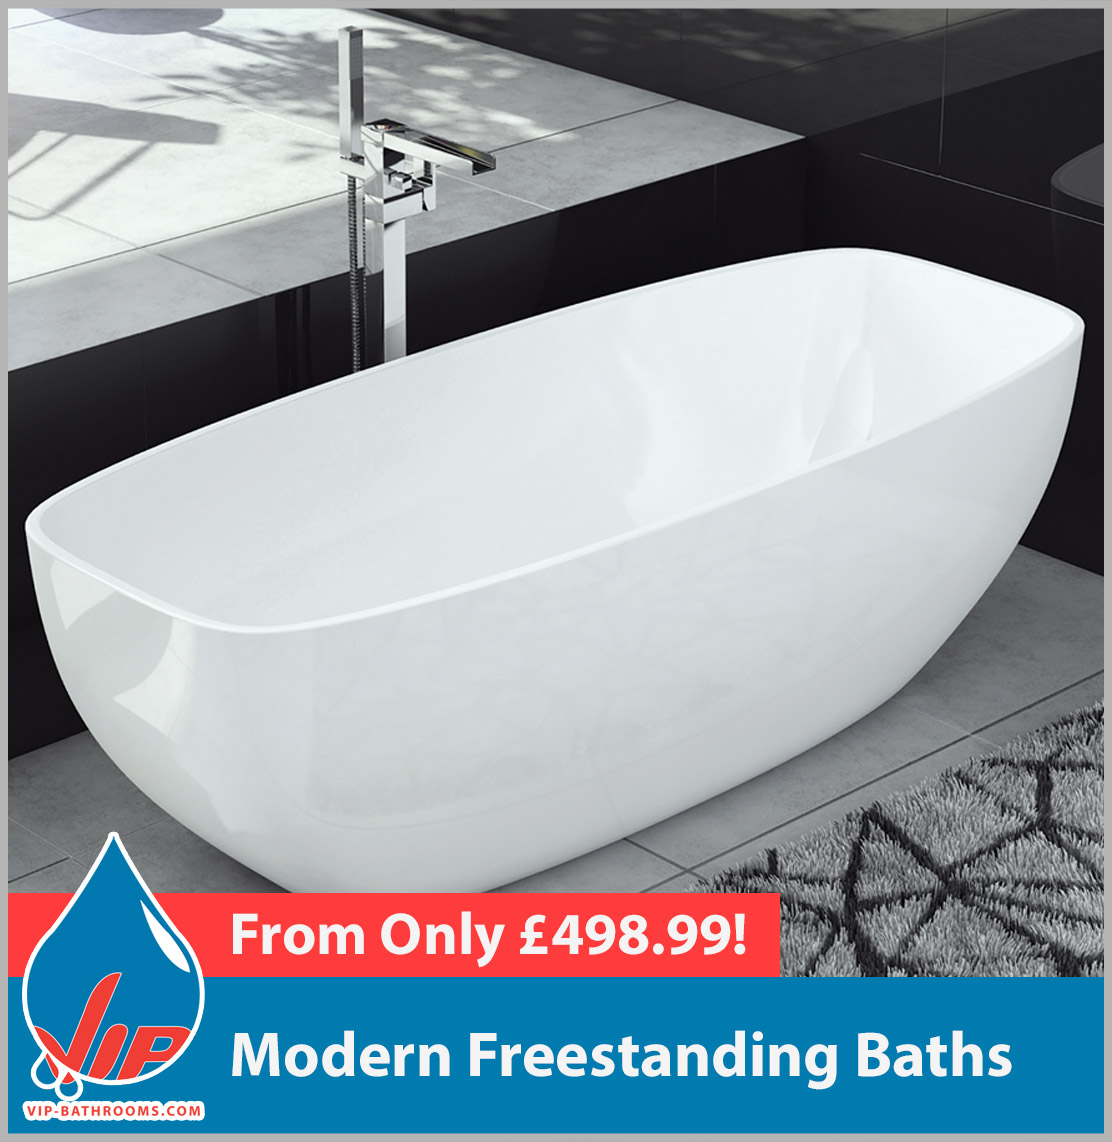 Click here to view our range of stunning designer Modern Freestanding Baths